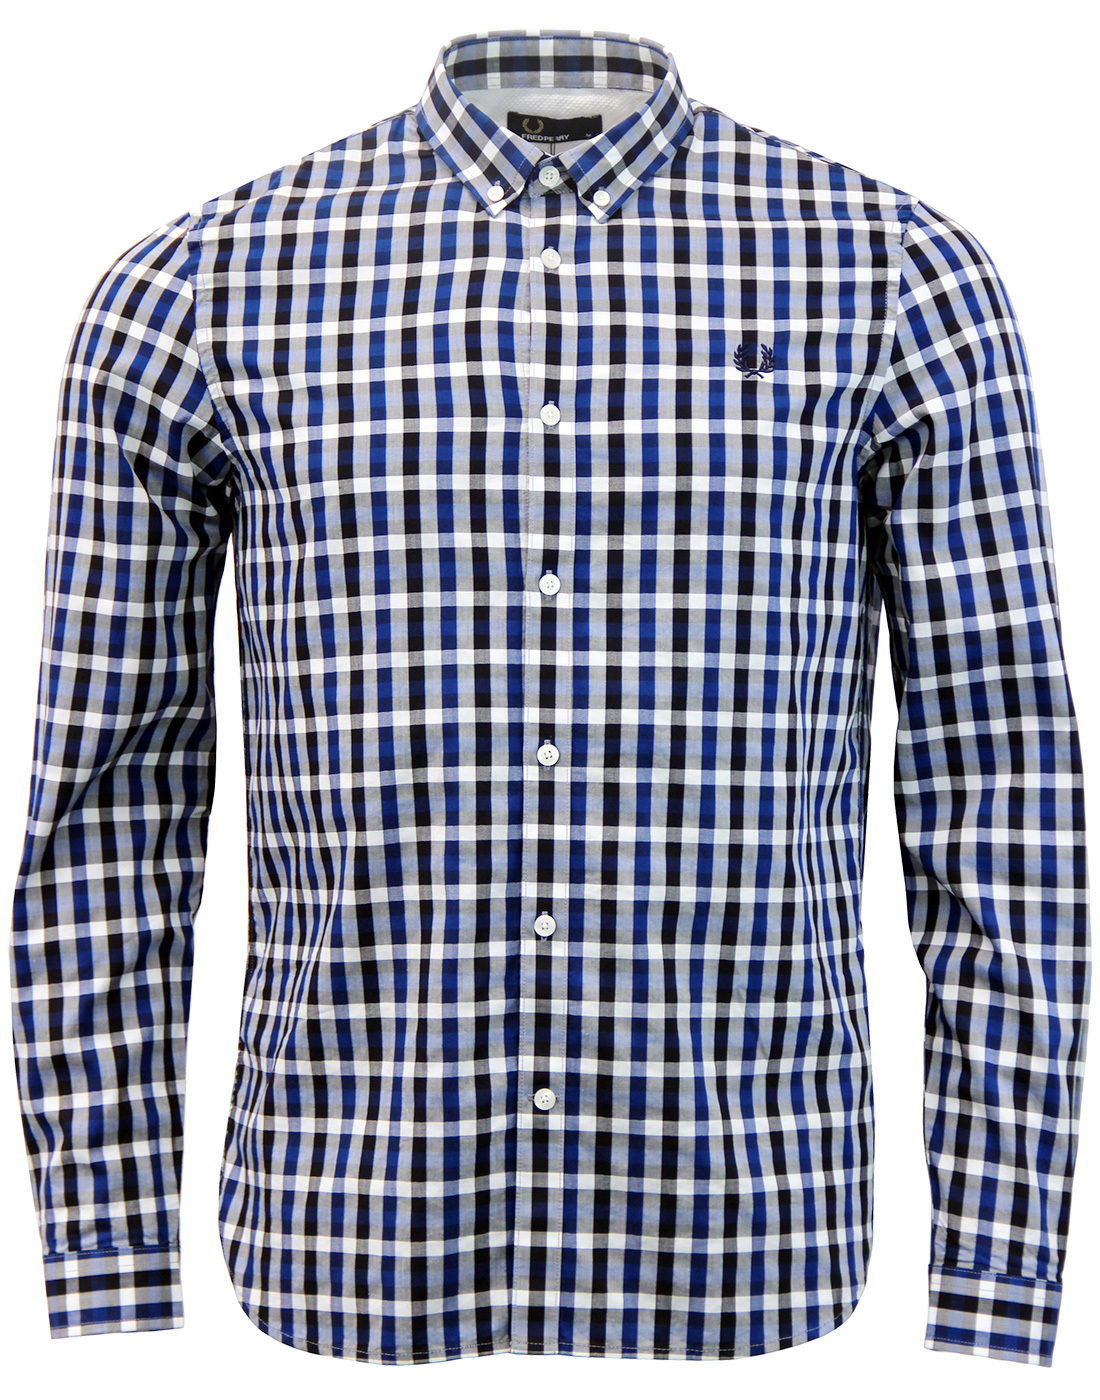 FRED PERRY Mod Gingham Check Button Down Shirt